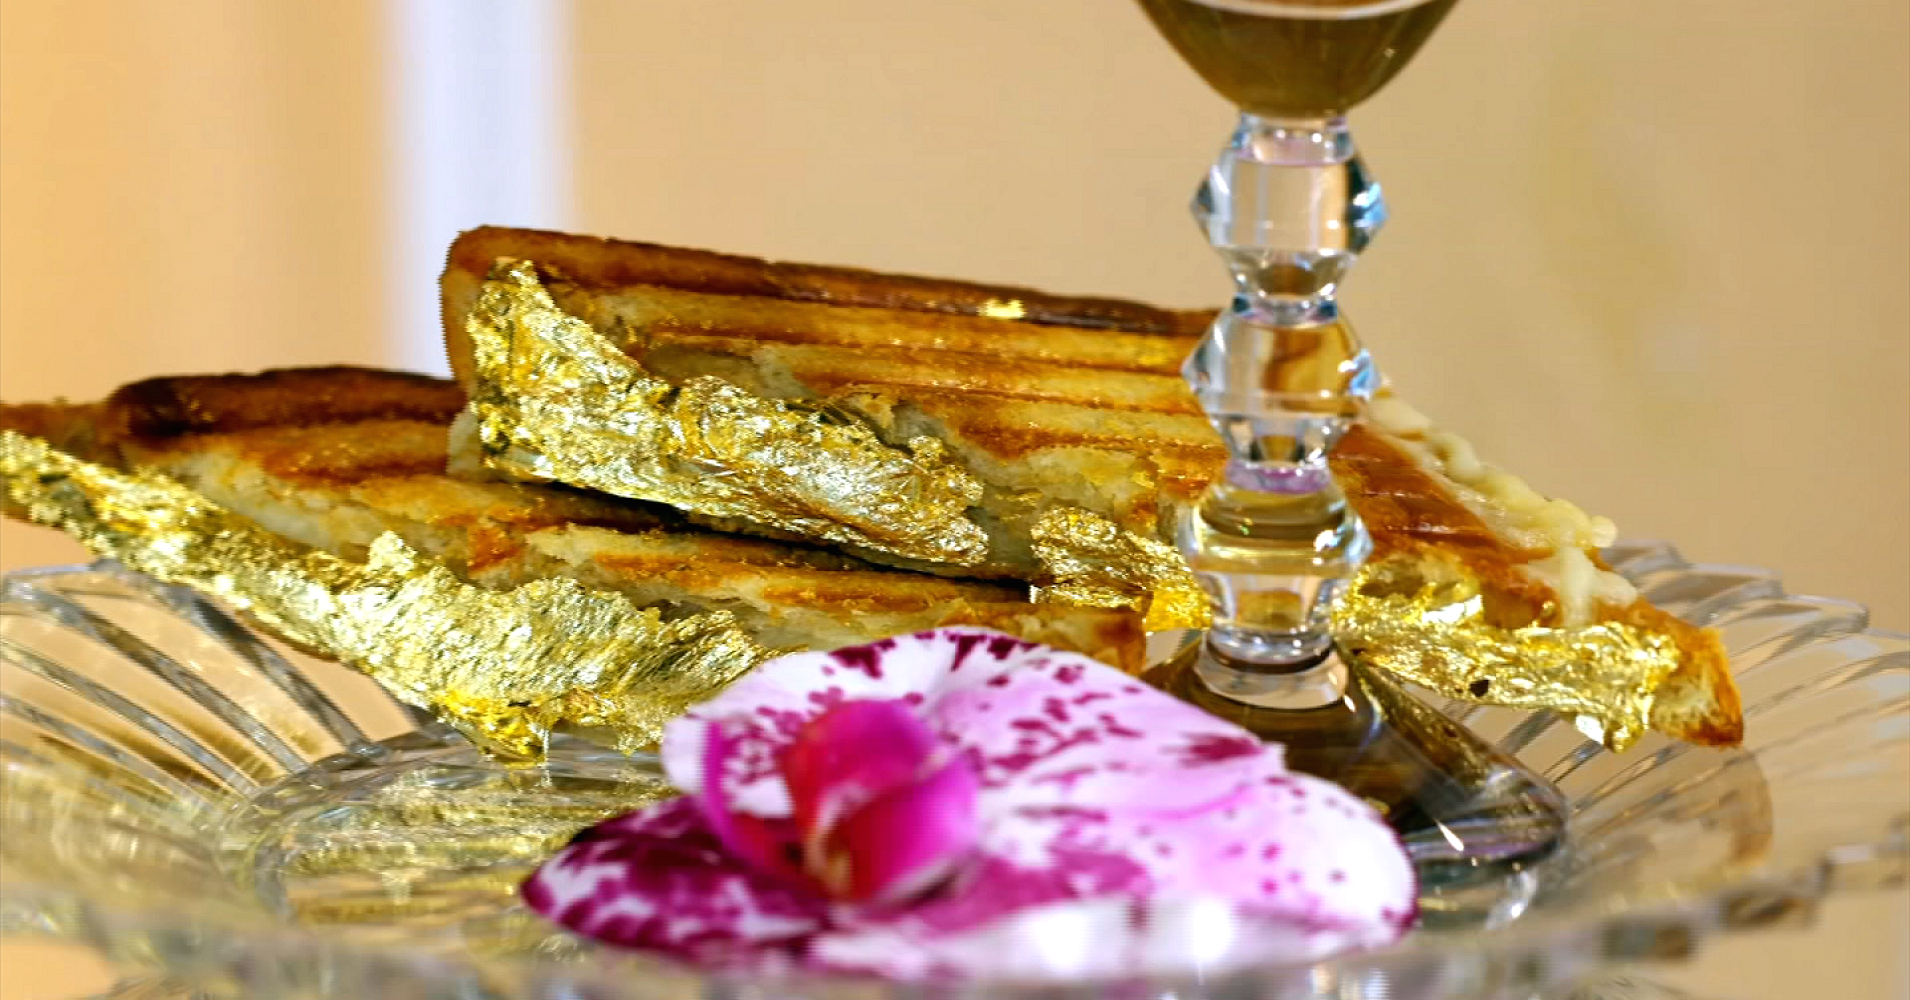 The Most Expensive Grilled Cheese In The World Costs $214 And Is Gilded With Real Gold photo